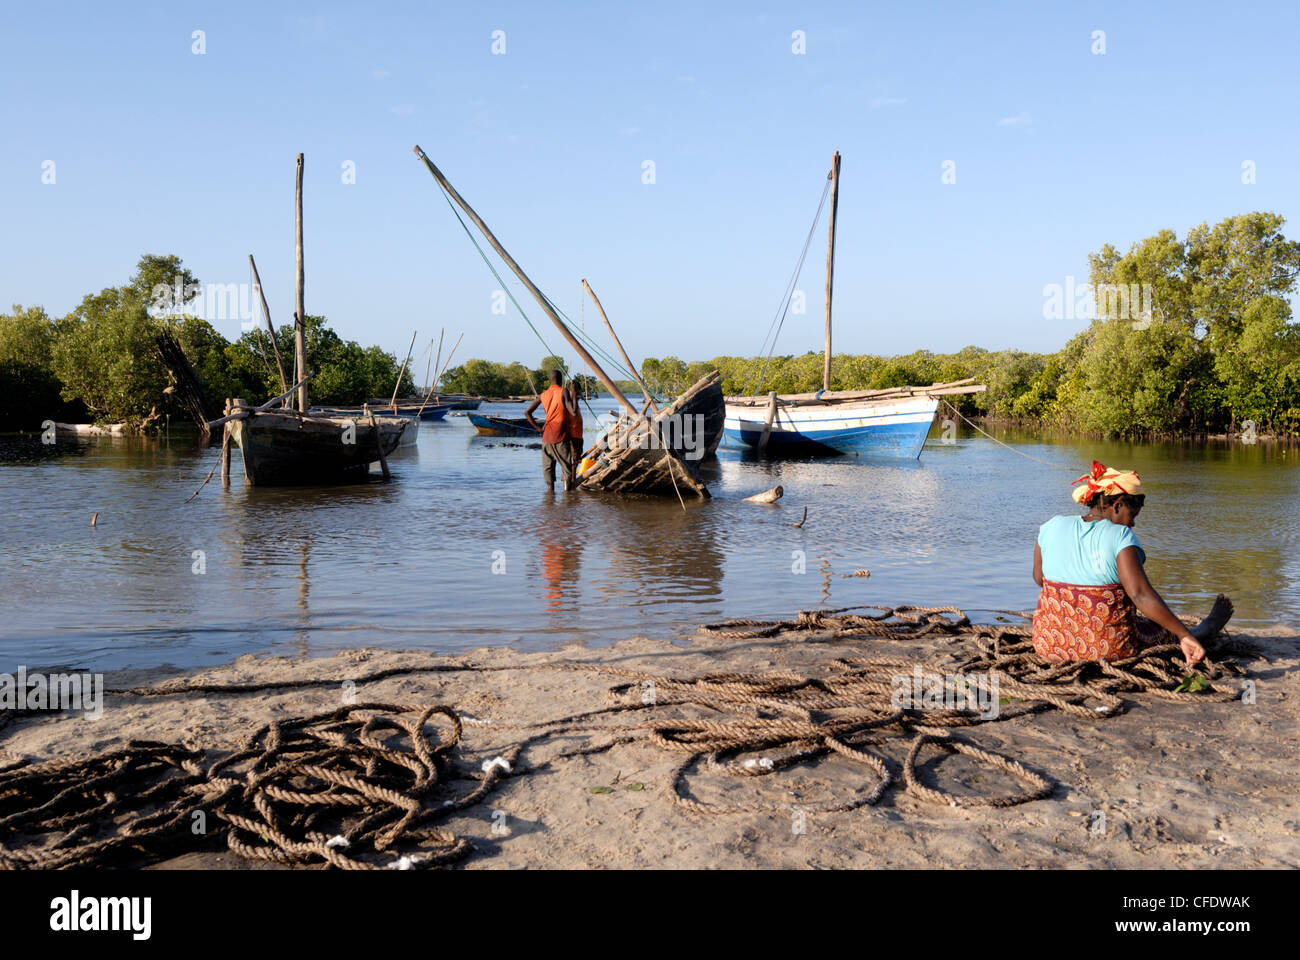 Dhows, harbour near Ibo Island, Mozambique, Africa - Stock Image